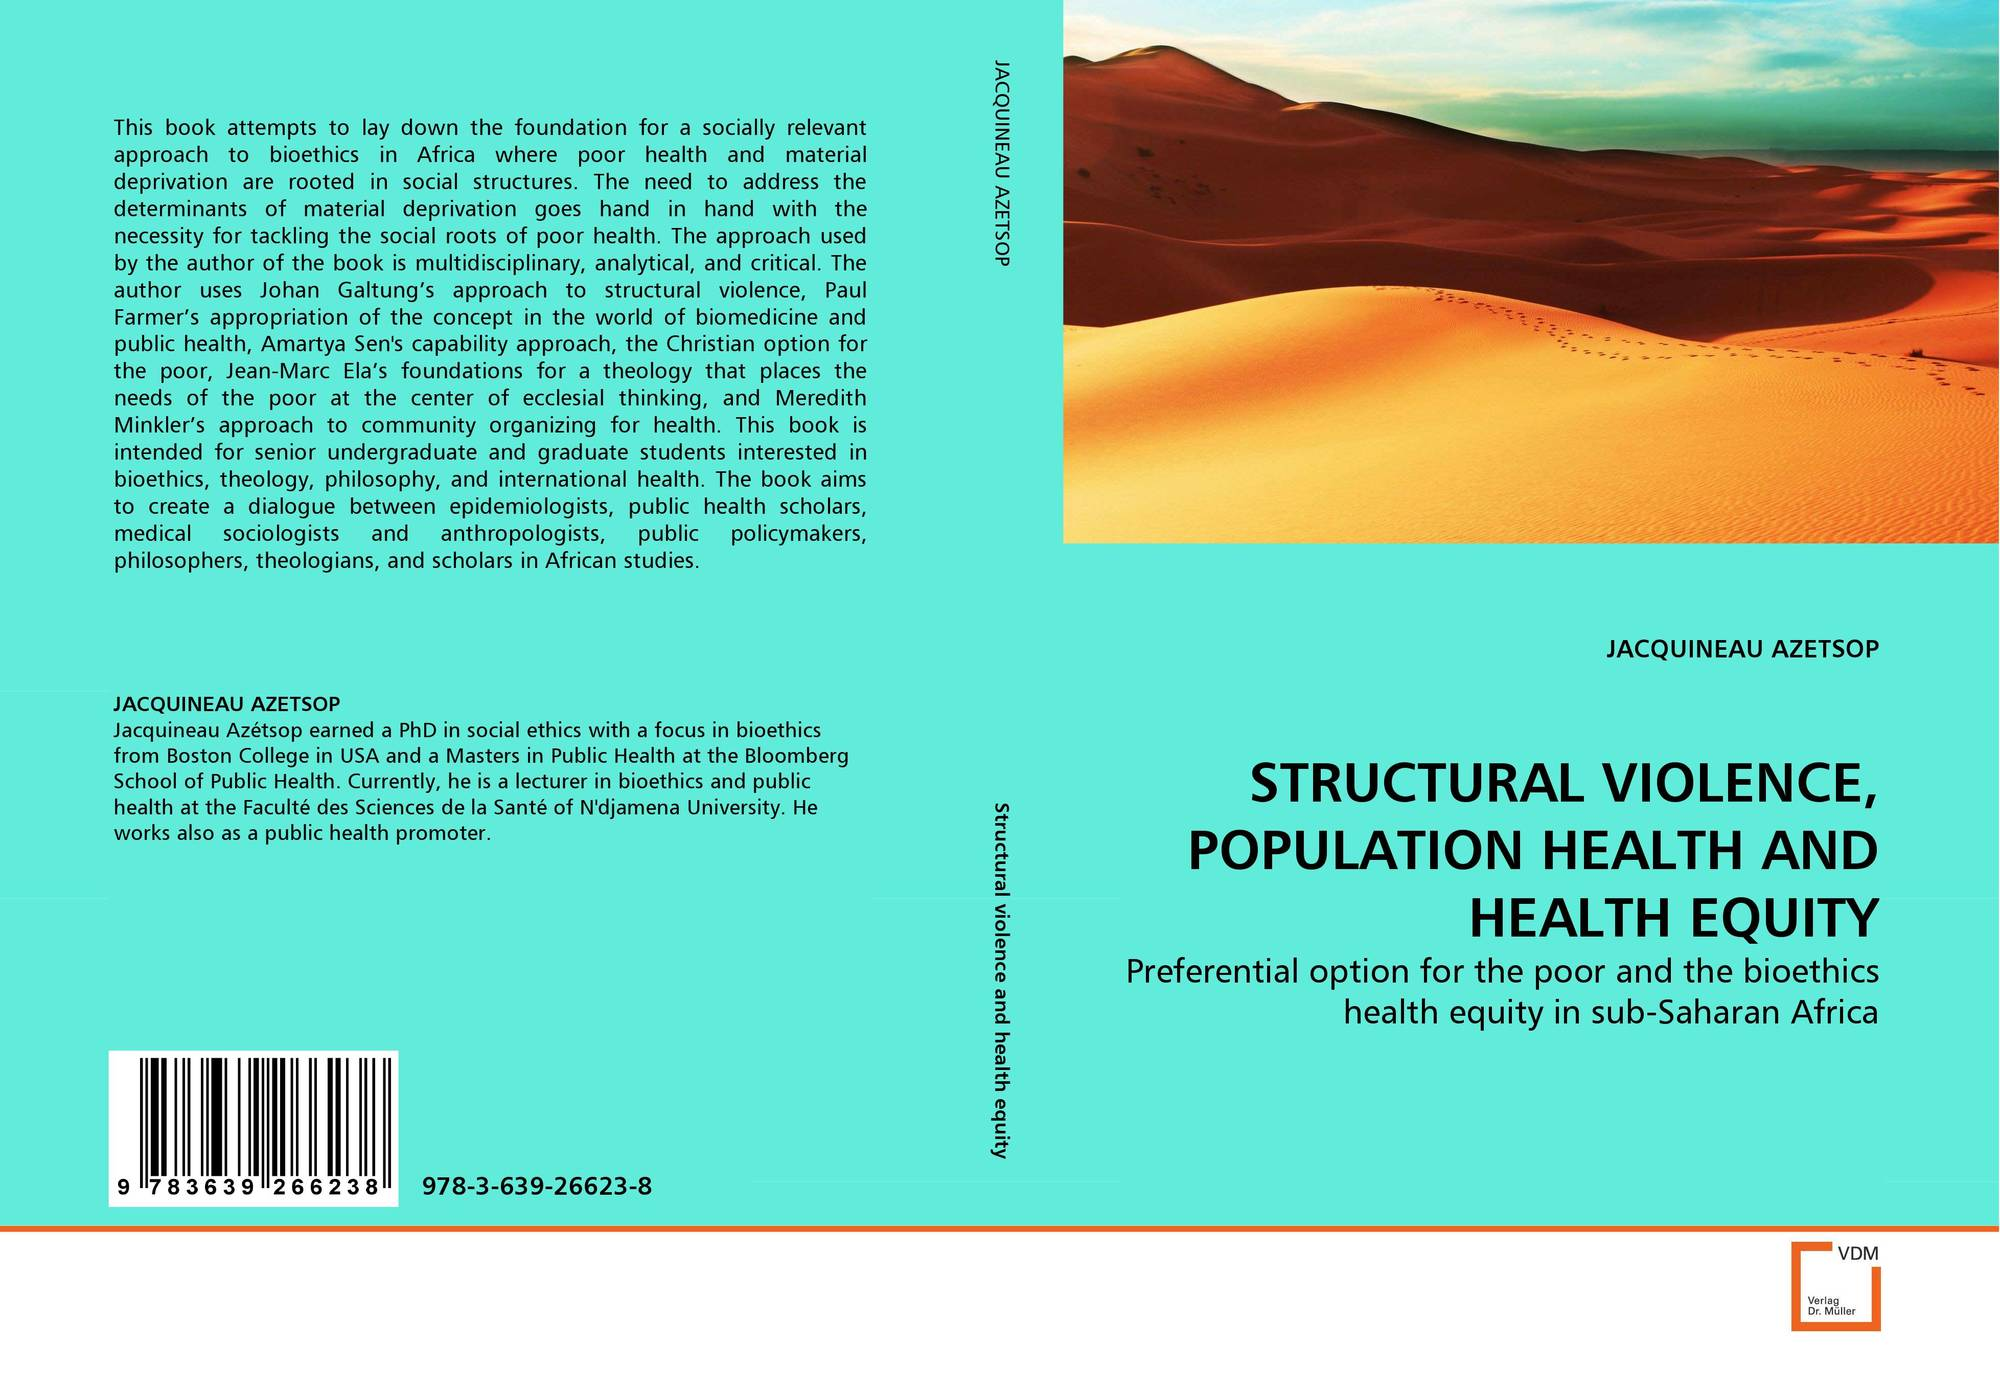 structural violence This article examines the interrelationships among structural violence, poverty and social suffering it begins with a vignette from haiti, the poorest country in the western hemisphere, that puts a face on structural violence it then traces the historical roots and characteristic features of the concept of structural violence and goes on to discuss its relationship to other types of violence.